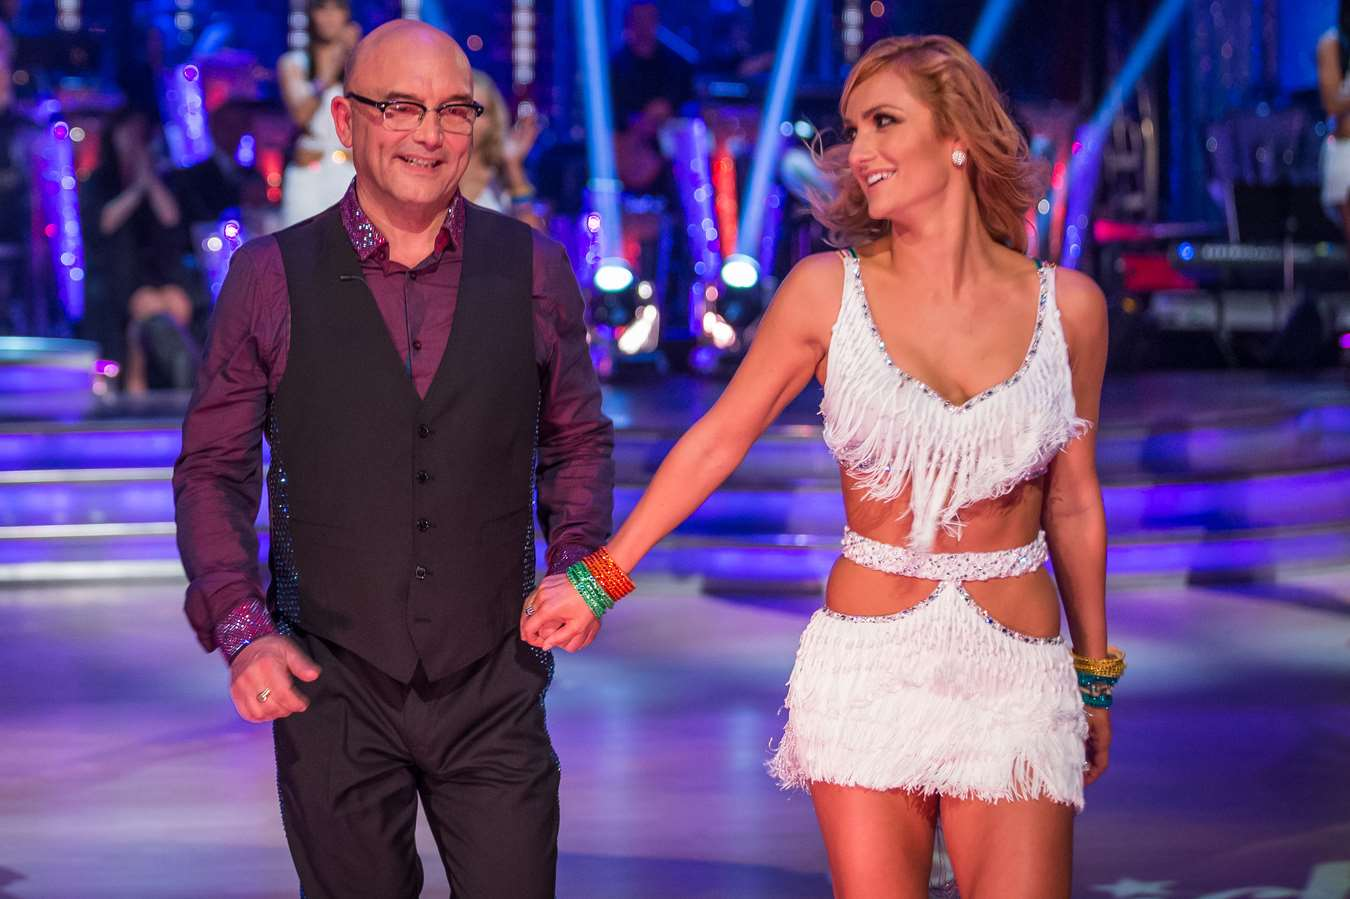 MasterChef star Gregg Wallace is paired with professional dancer Aliona Vilani. Picture: BBC/Guy Levy